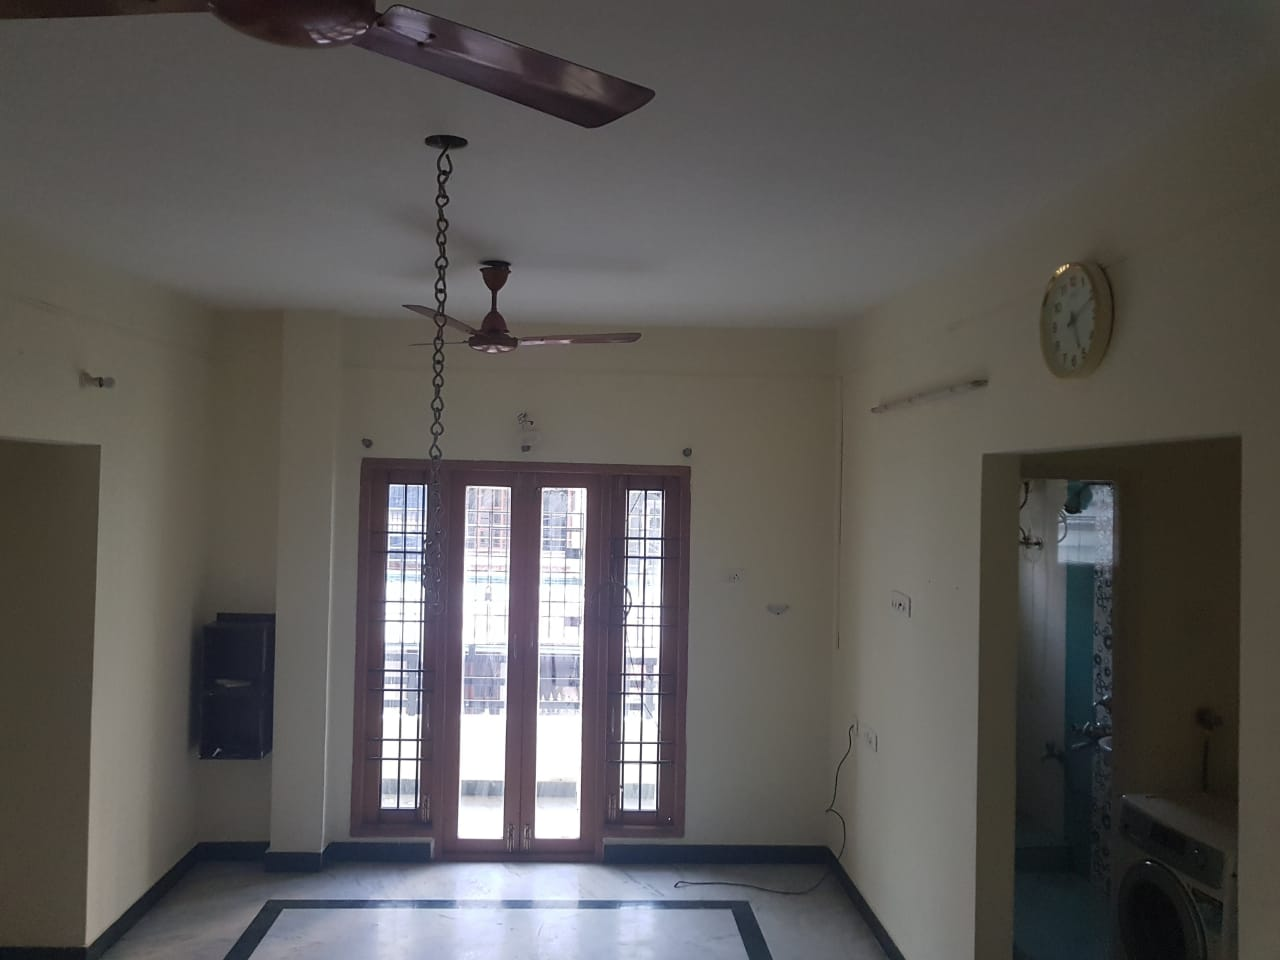 2BHK semifurnished flat for rent at velachery.Very near to Velachery Tambaram main road.